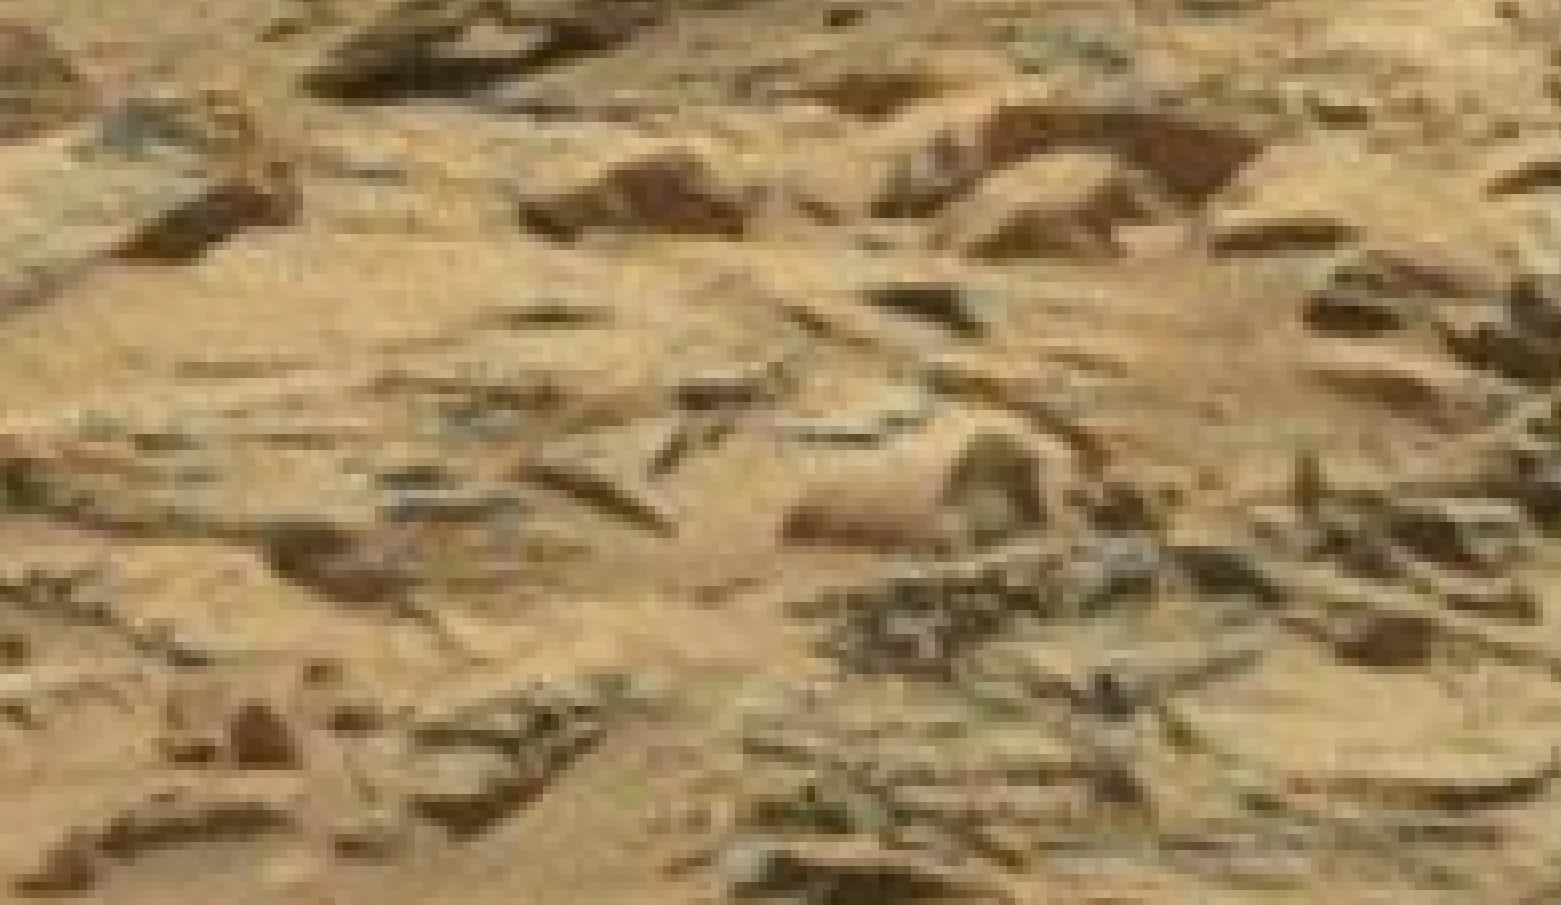 mars sol 1296 anomaly-artifacts 26 was life on mars